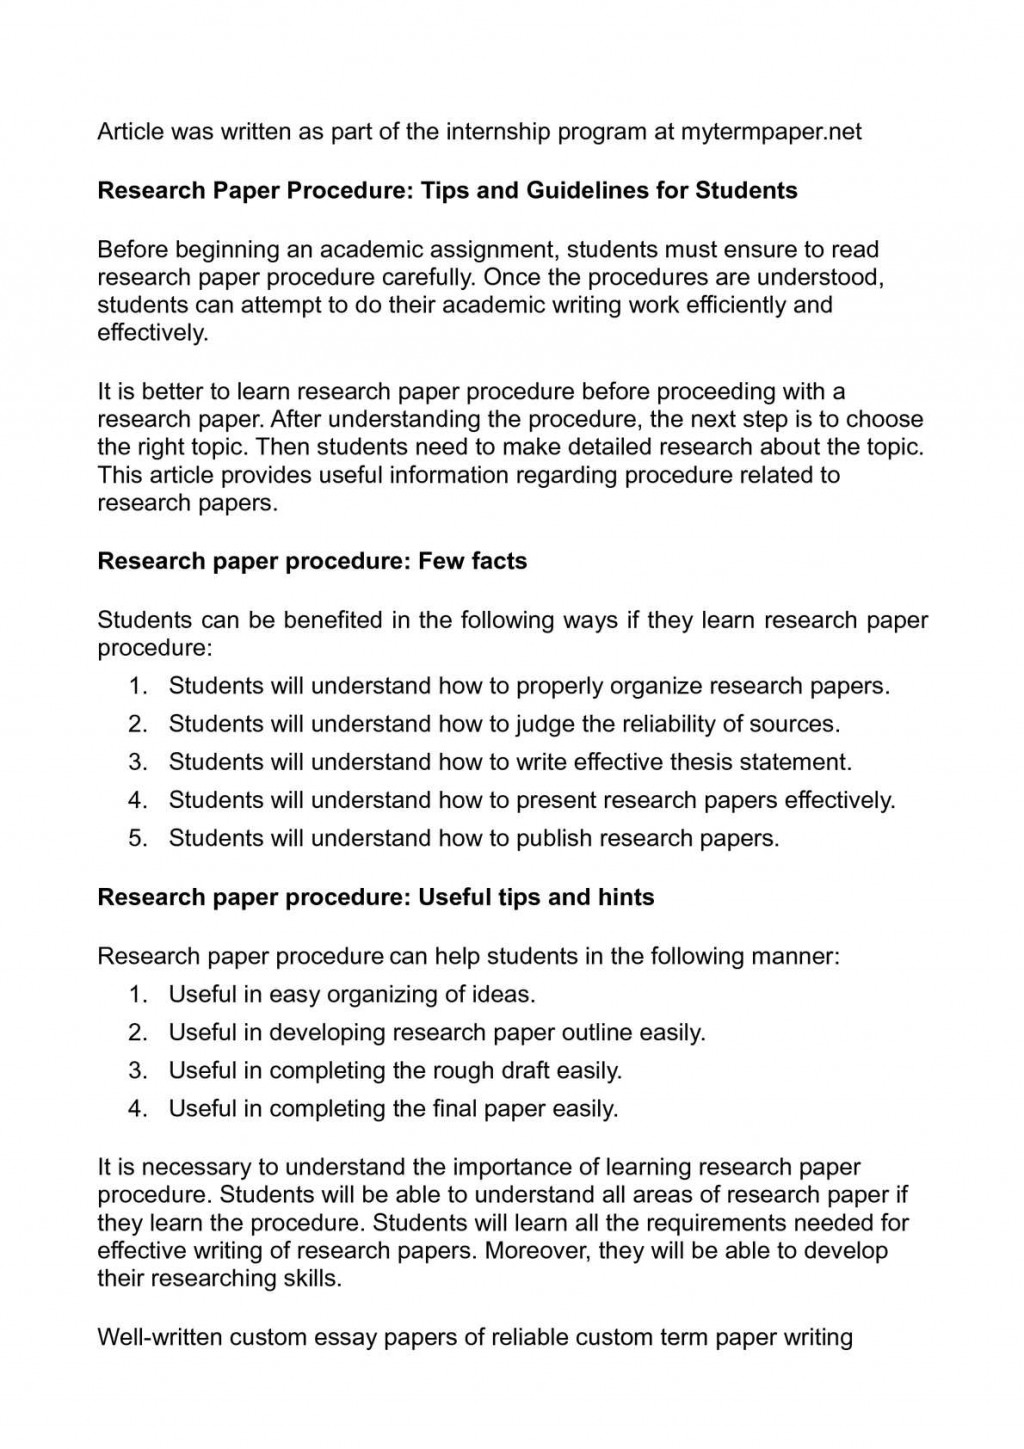 018 How To Do Research Paper Marvelous Review Write A Outline Owl Purdue Citing Sources Large